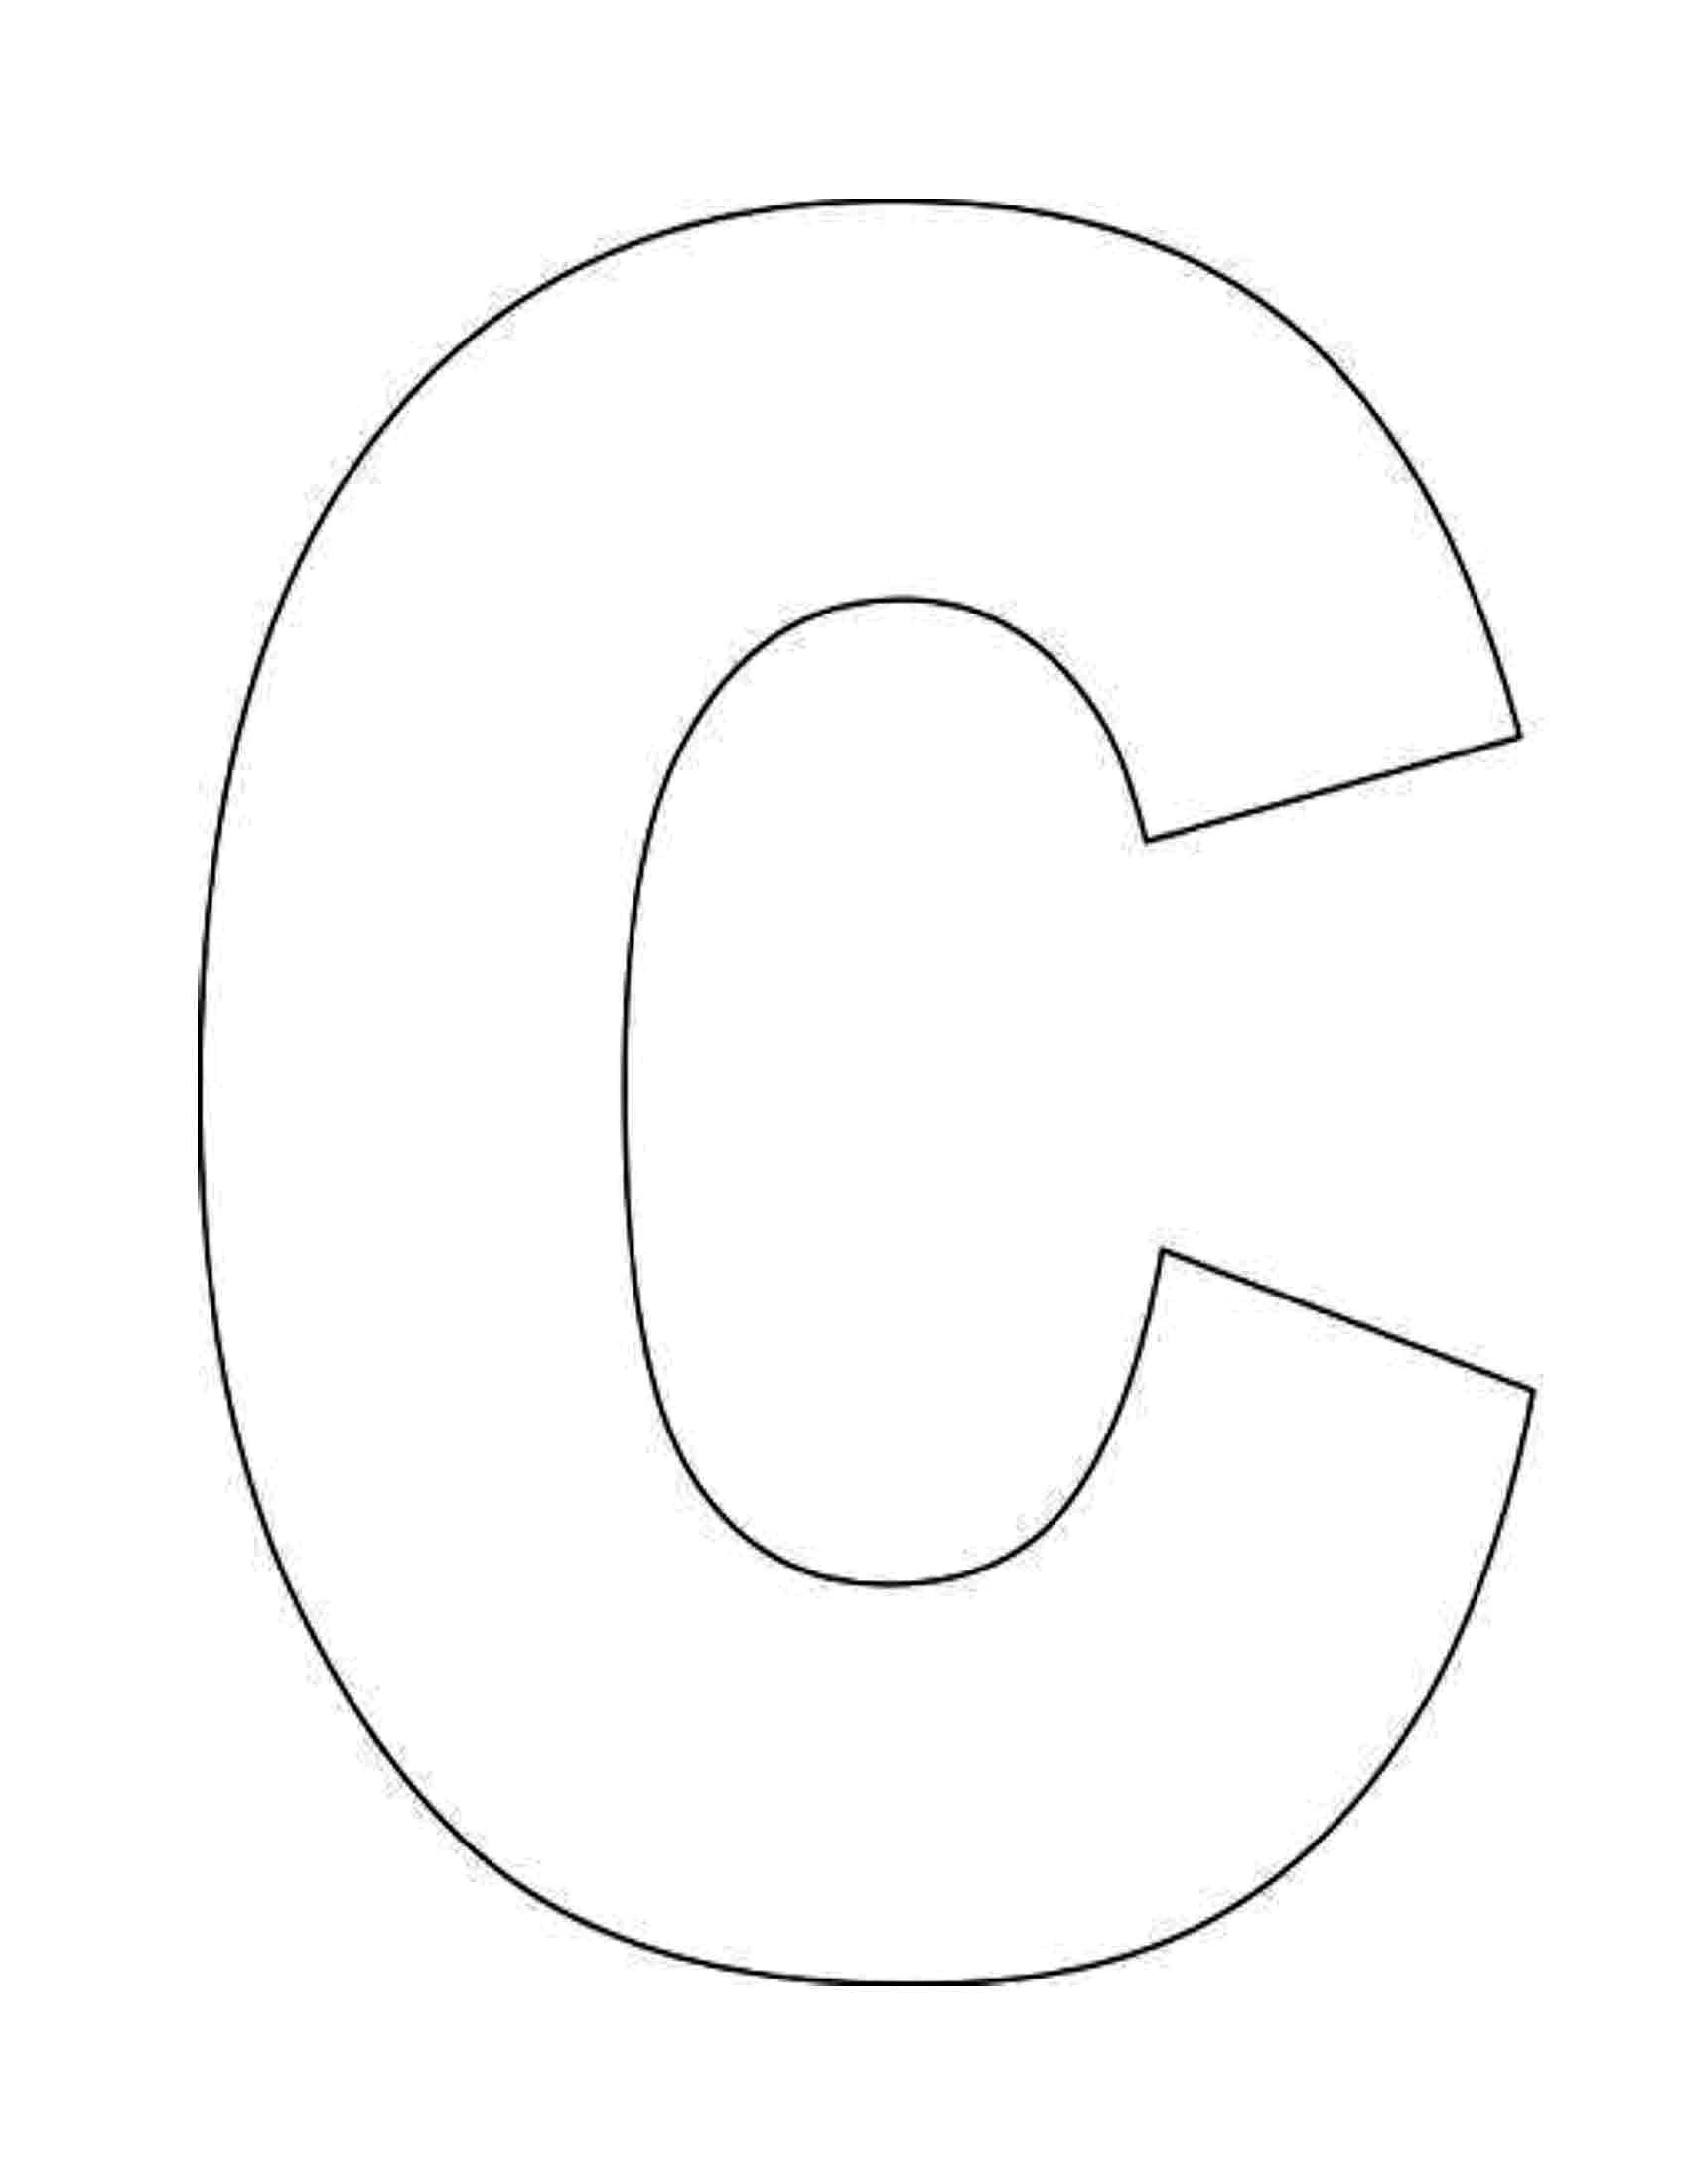 Download Or Print This Amazing Coloring Page Letter C Coloring Pages To Download And Prin Alphabet Letter Templates Letter C Coloring Pages Lettering Alphabet